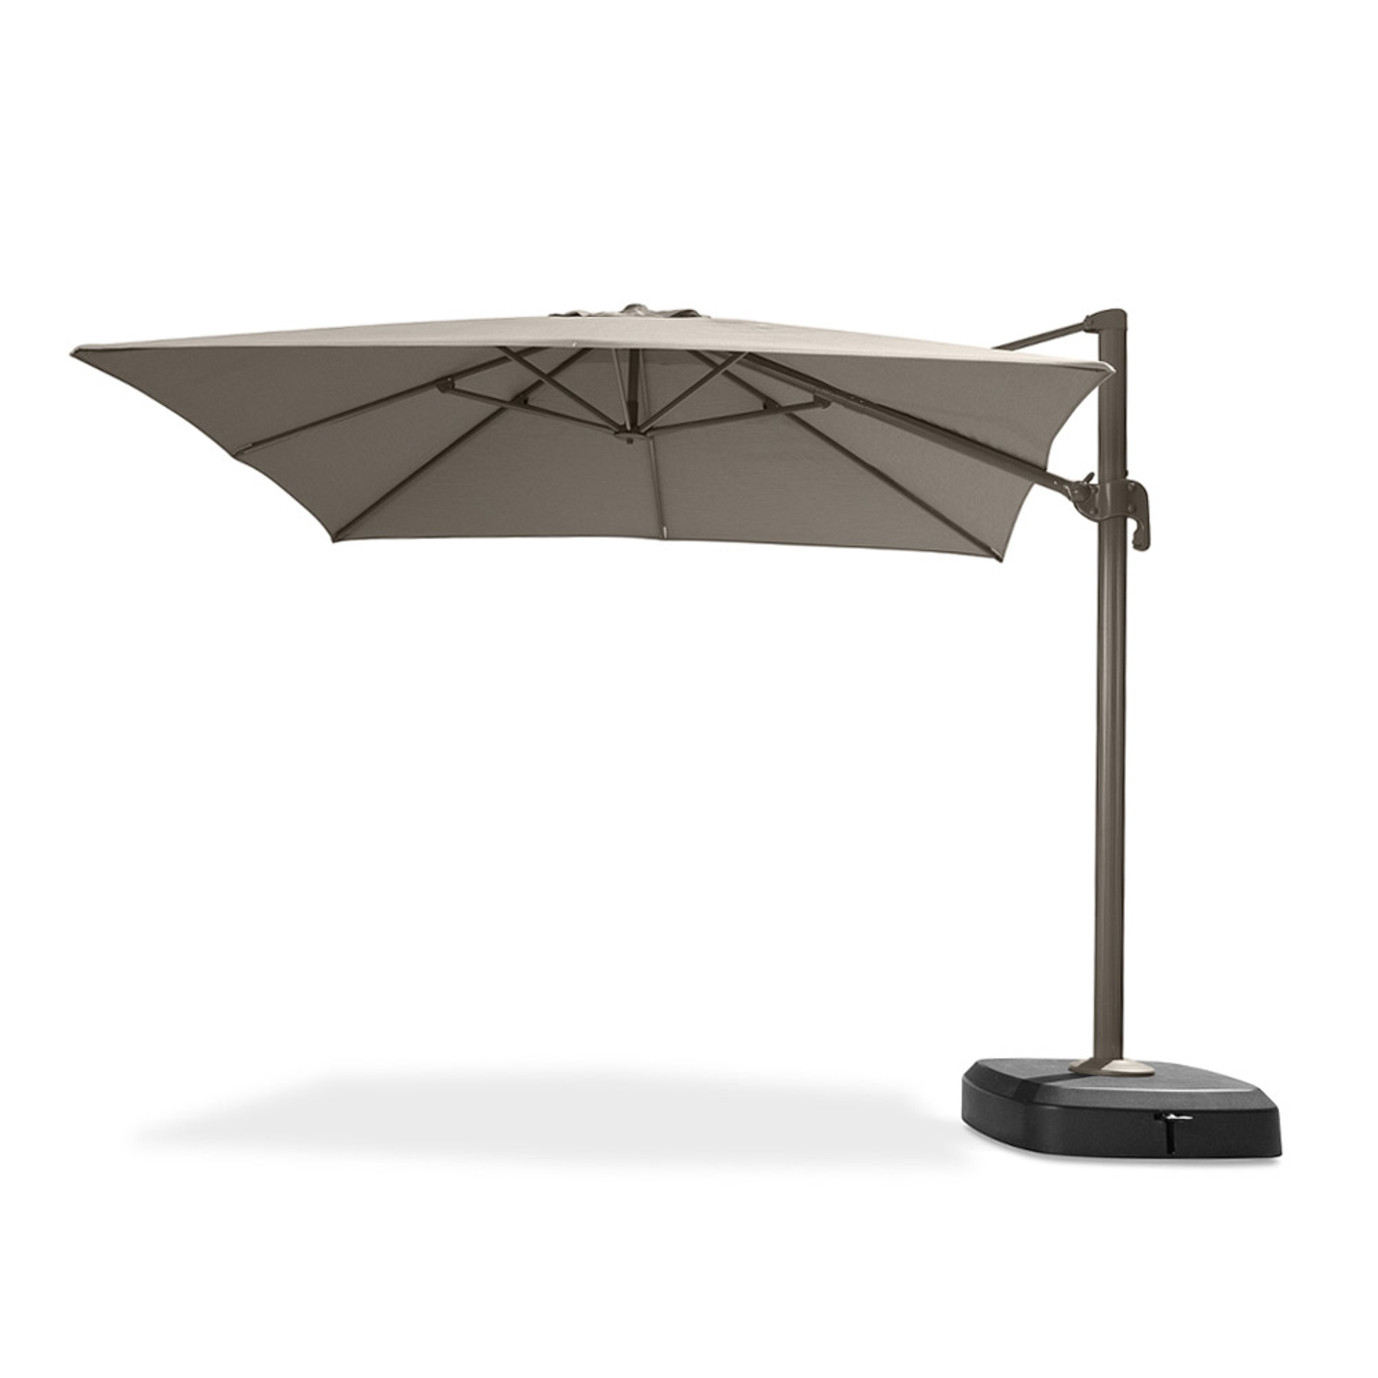 Portofino Comfort 10ft Resort Umbrella Espresso Taupe